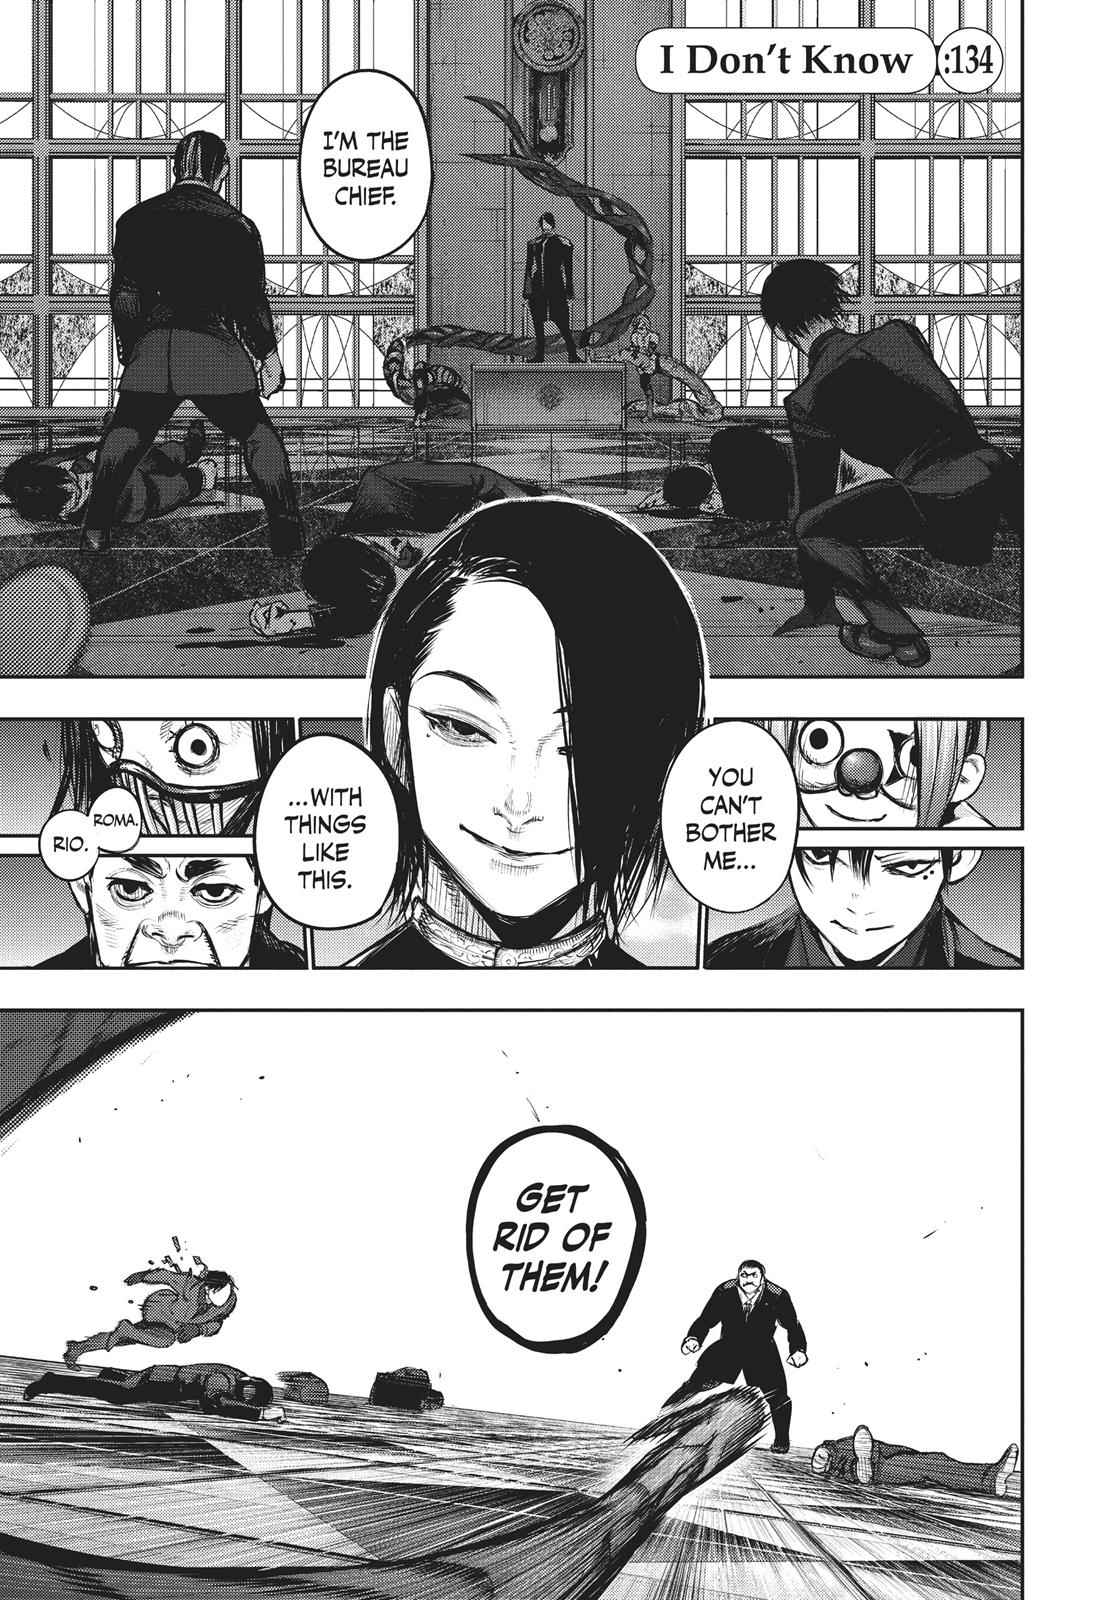 Tokyo Ghoul:re Chapter 134 Page 1